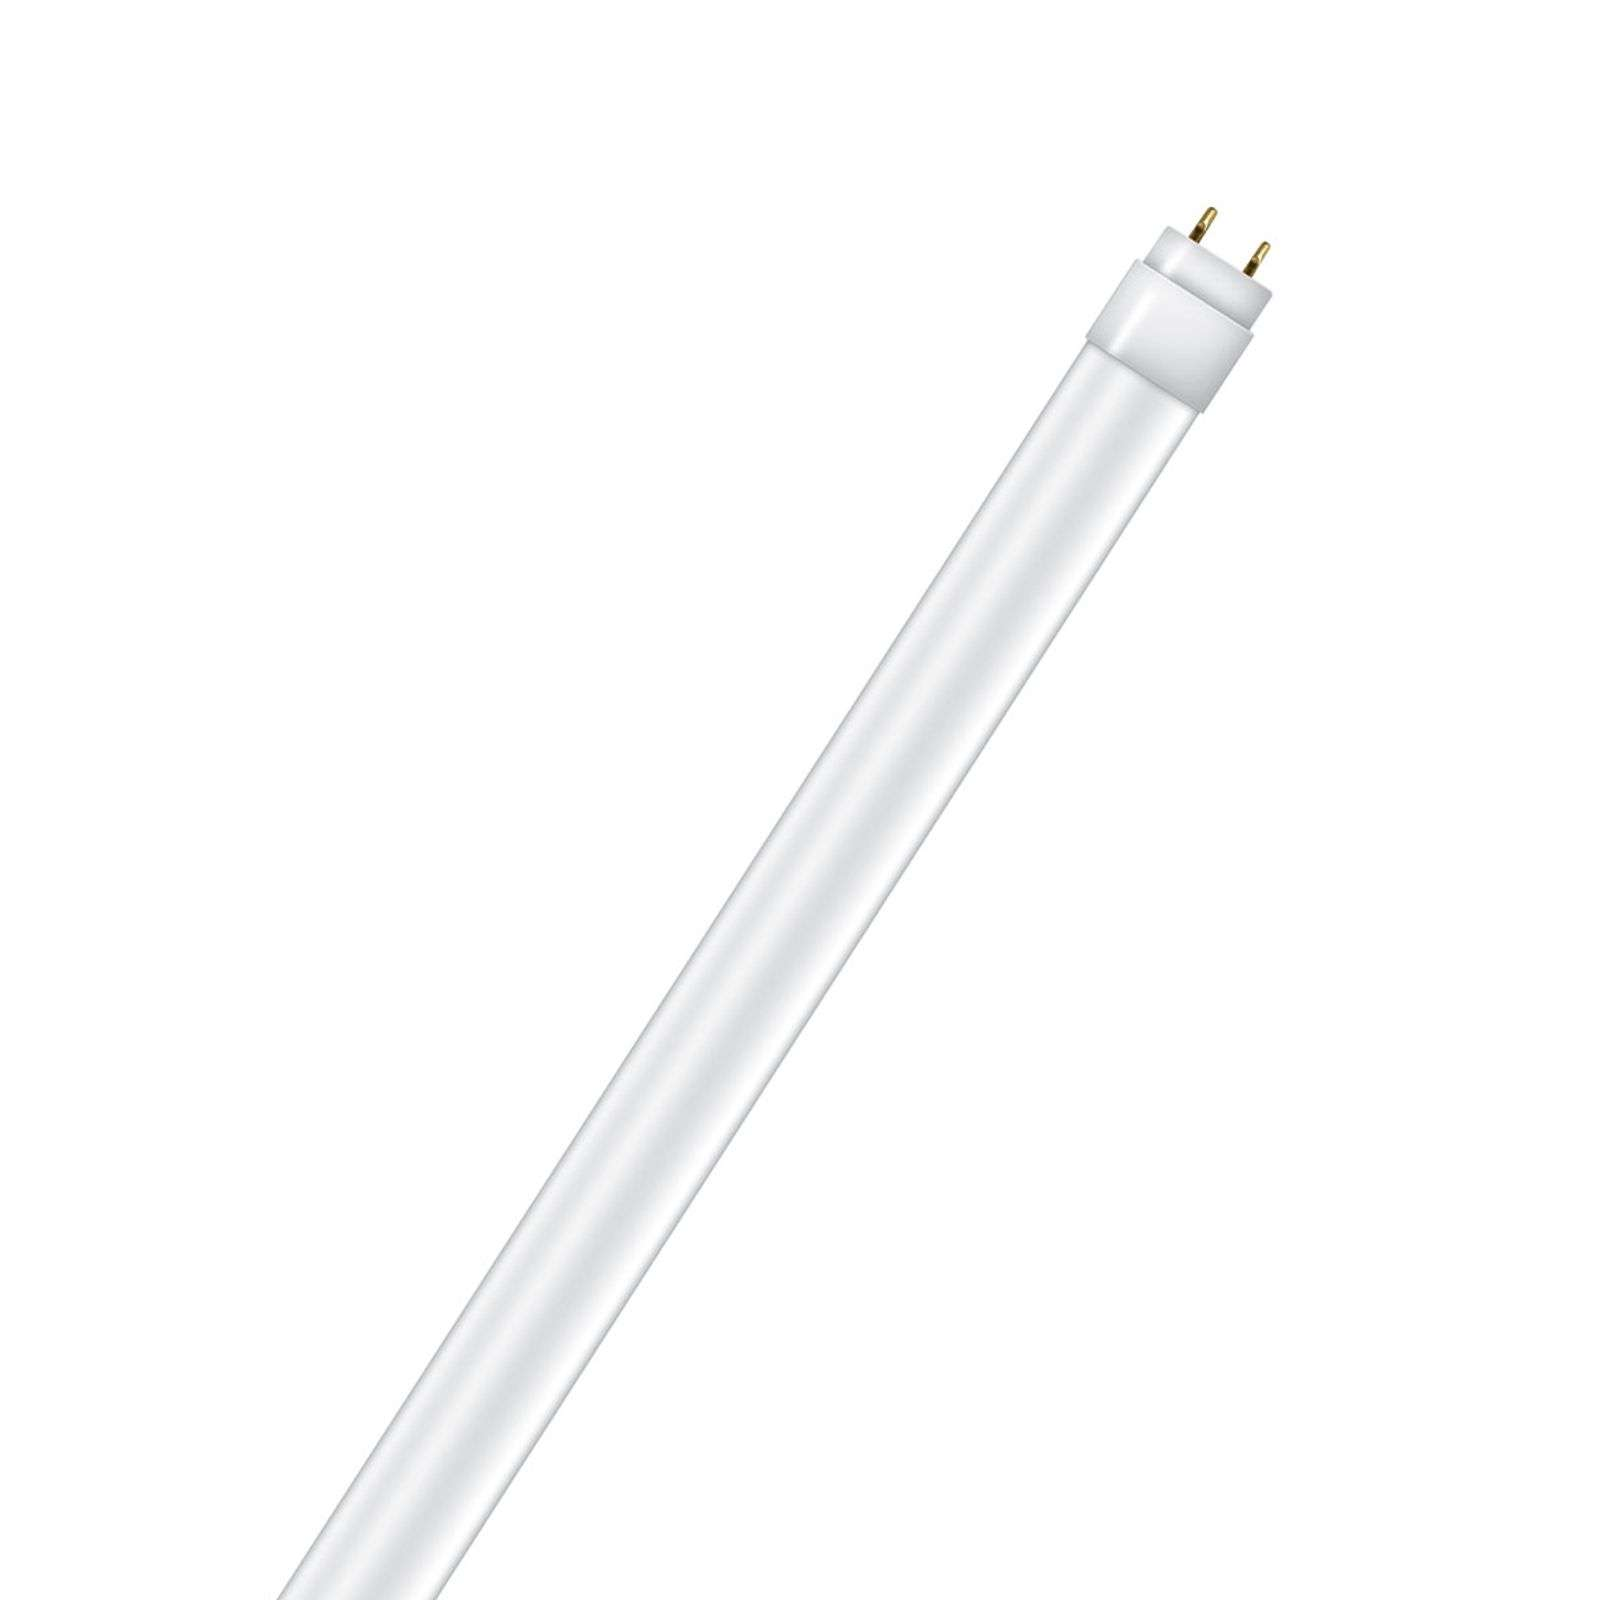 G13 T8 24W 840 SubstiTUBE Basic LED-Tube